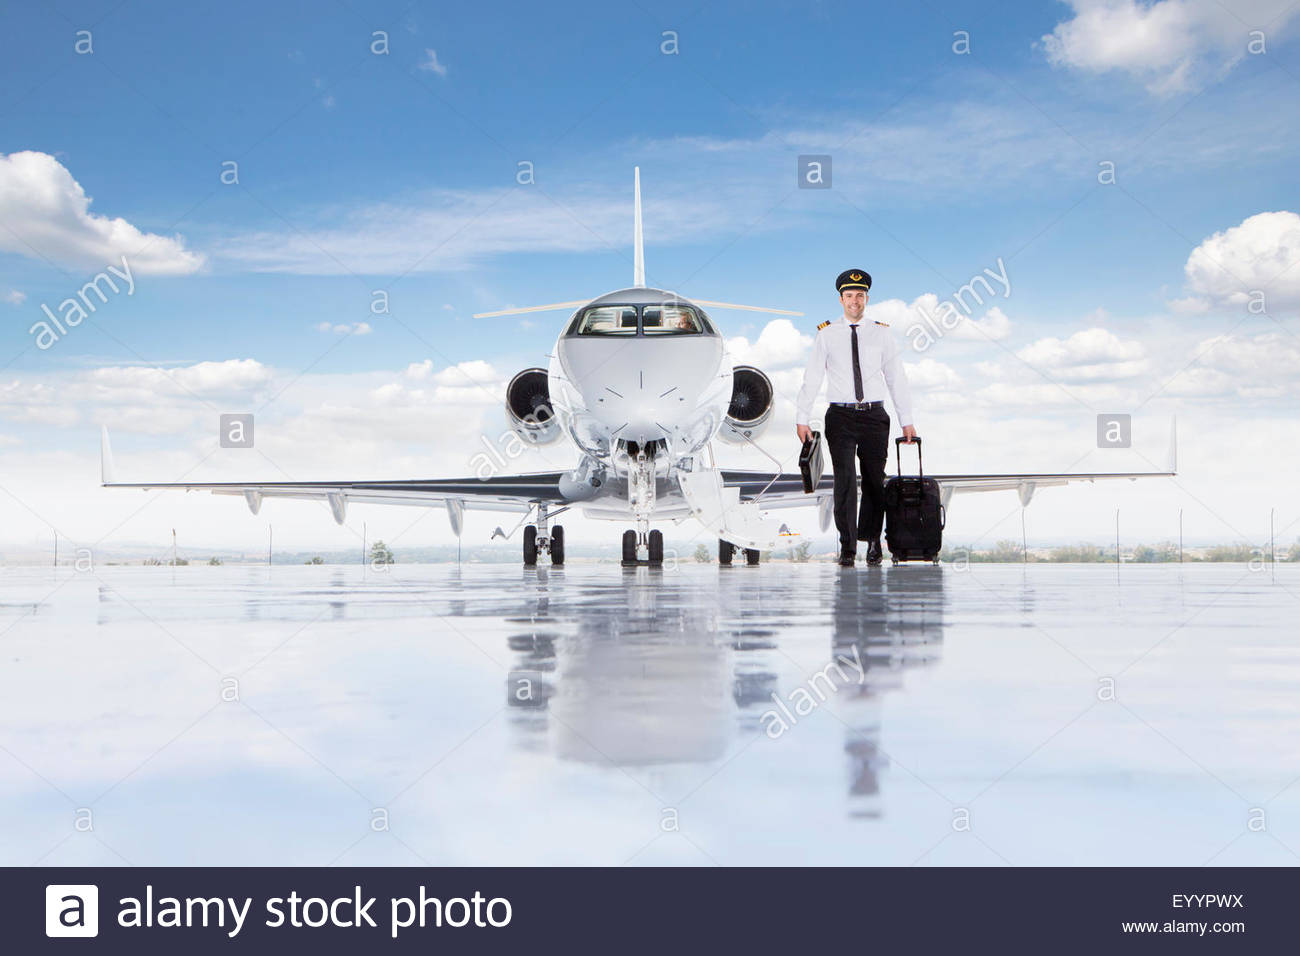 Pilot walking away from private jet - Stock Image